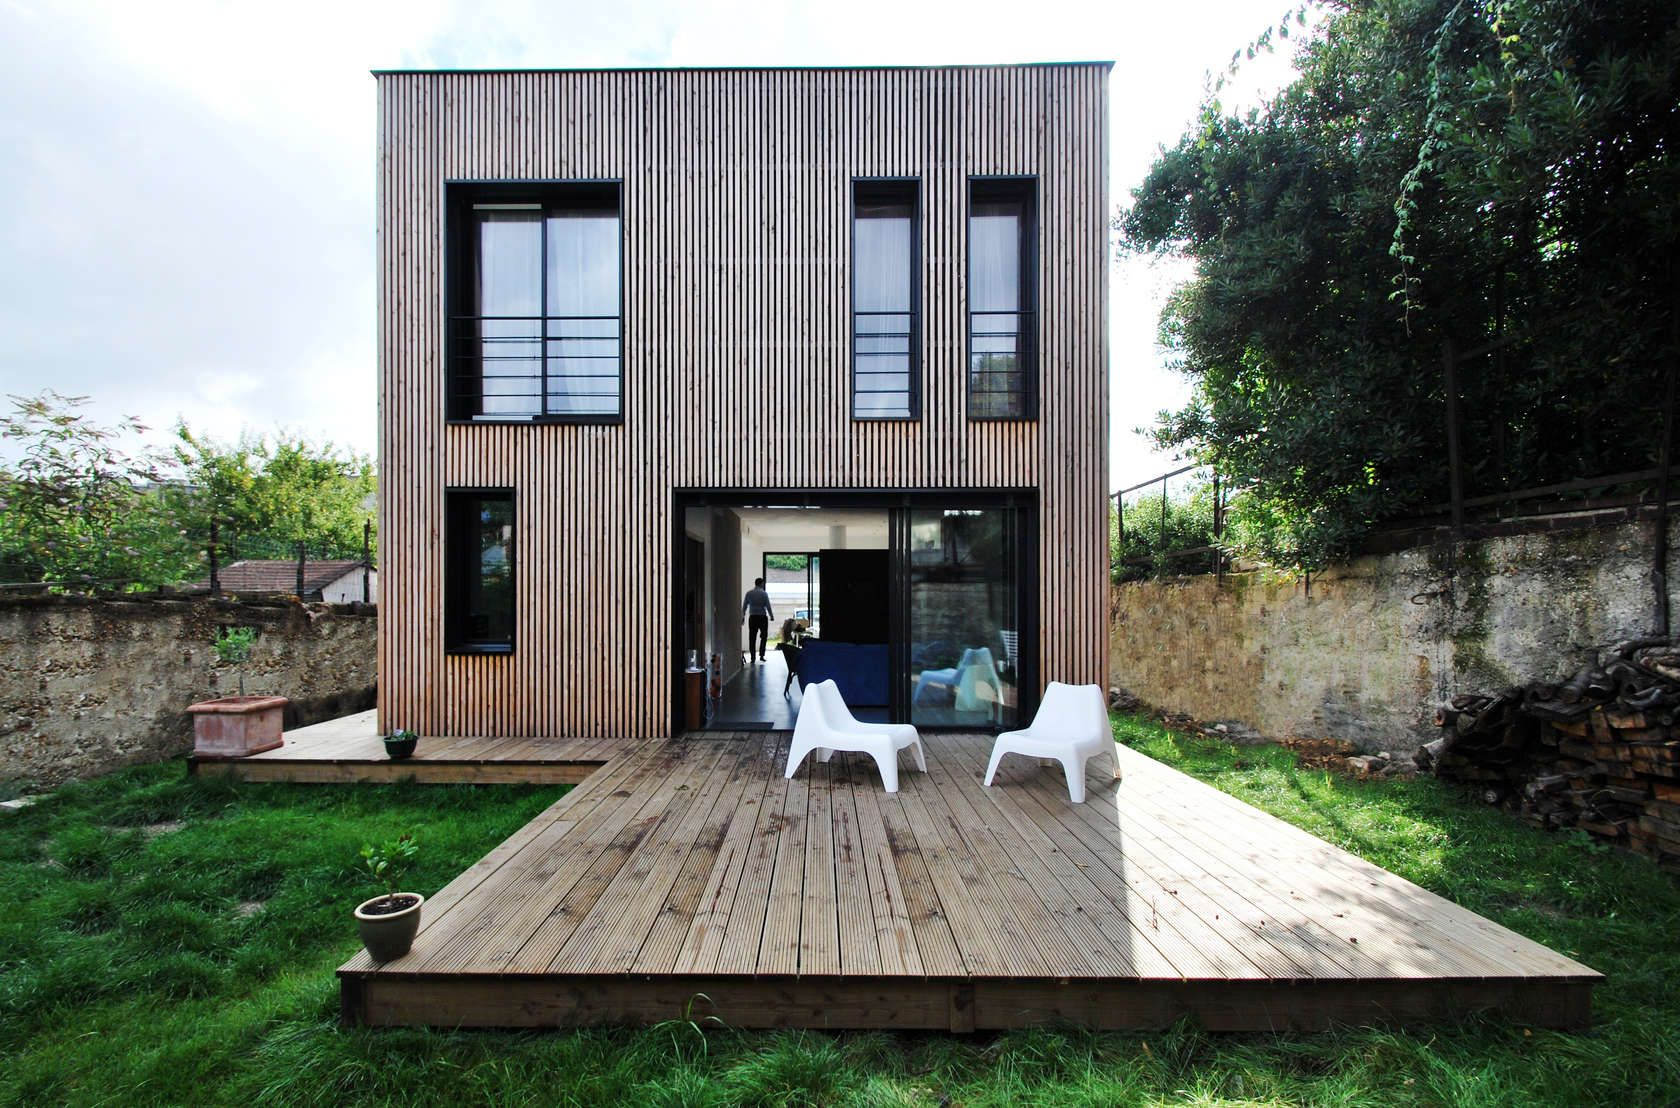 Passive cube house par skp architecture pinay sur seine for Minimalist house wood